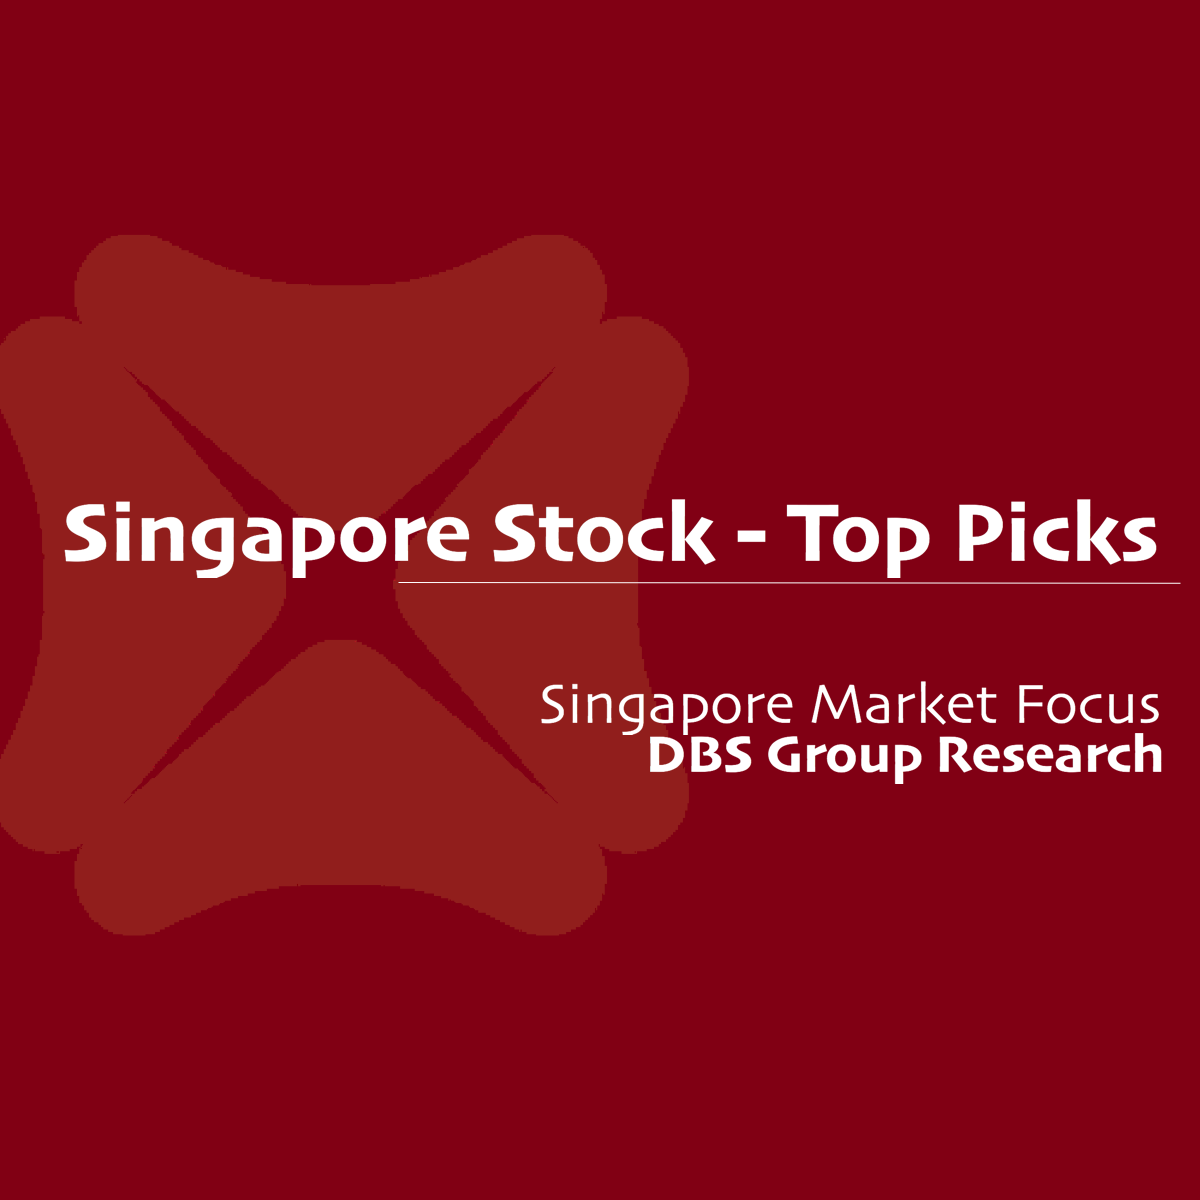 Singapore Strategy - DBS Vickers 2016-12-14: 2017 Outlook ~ Top ten stock picks